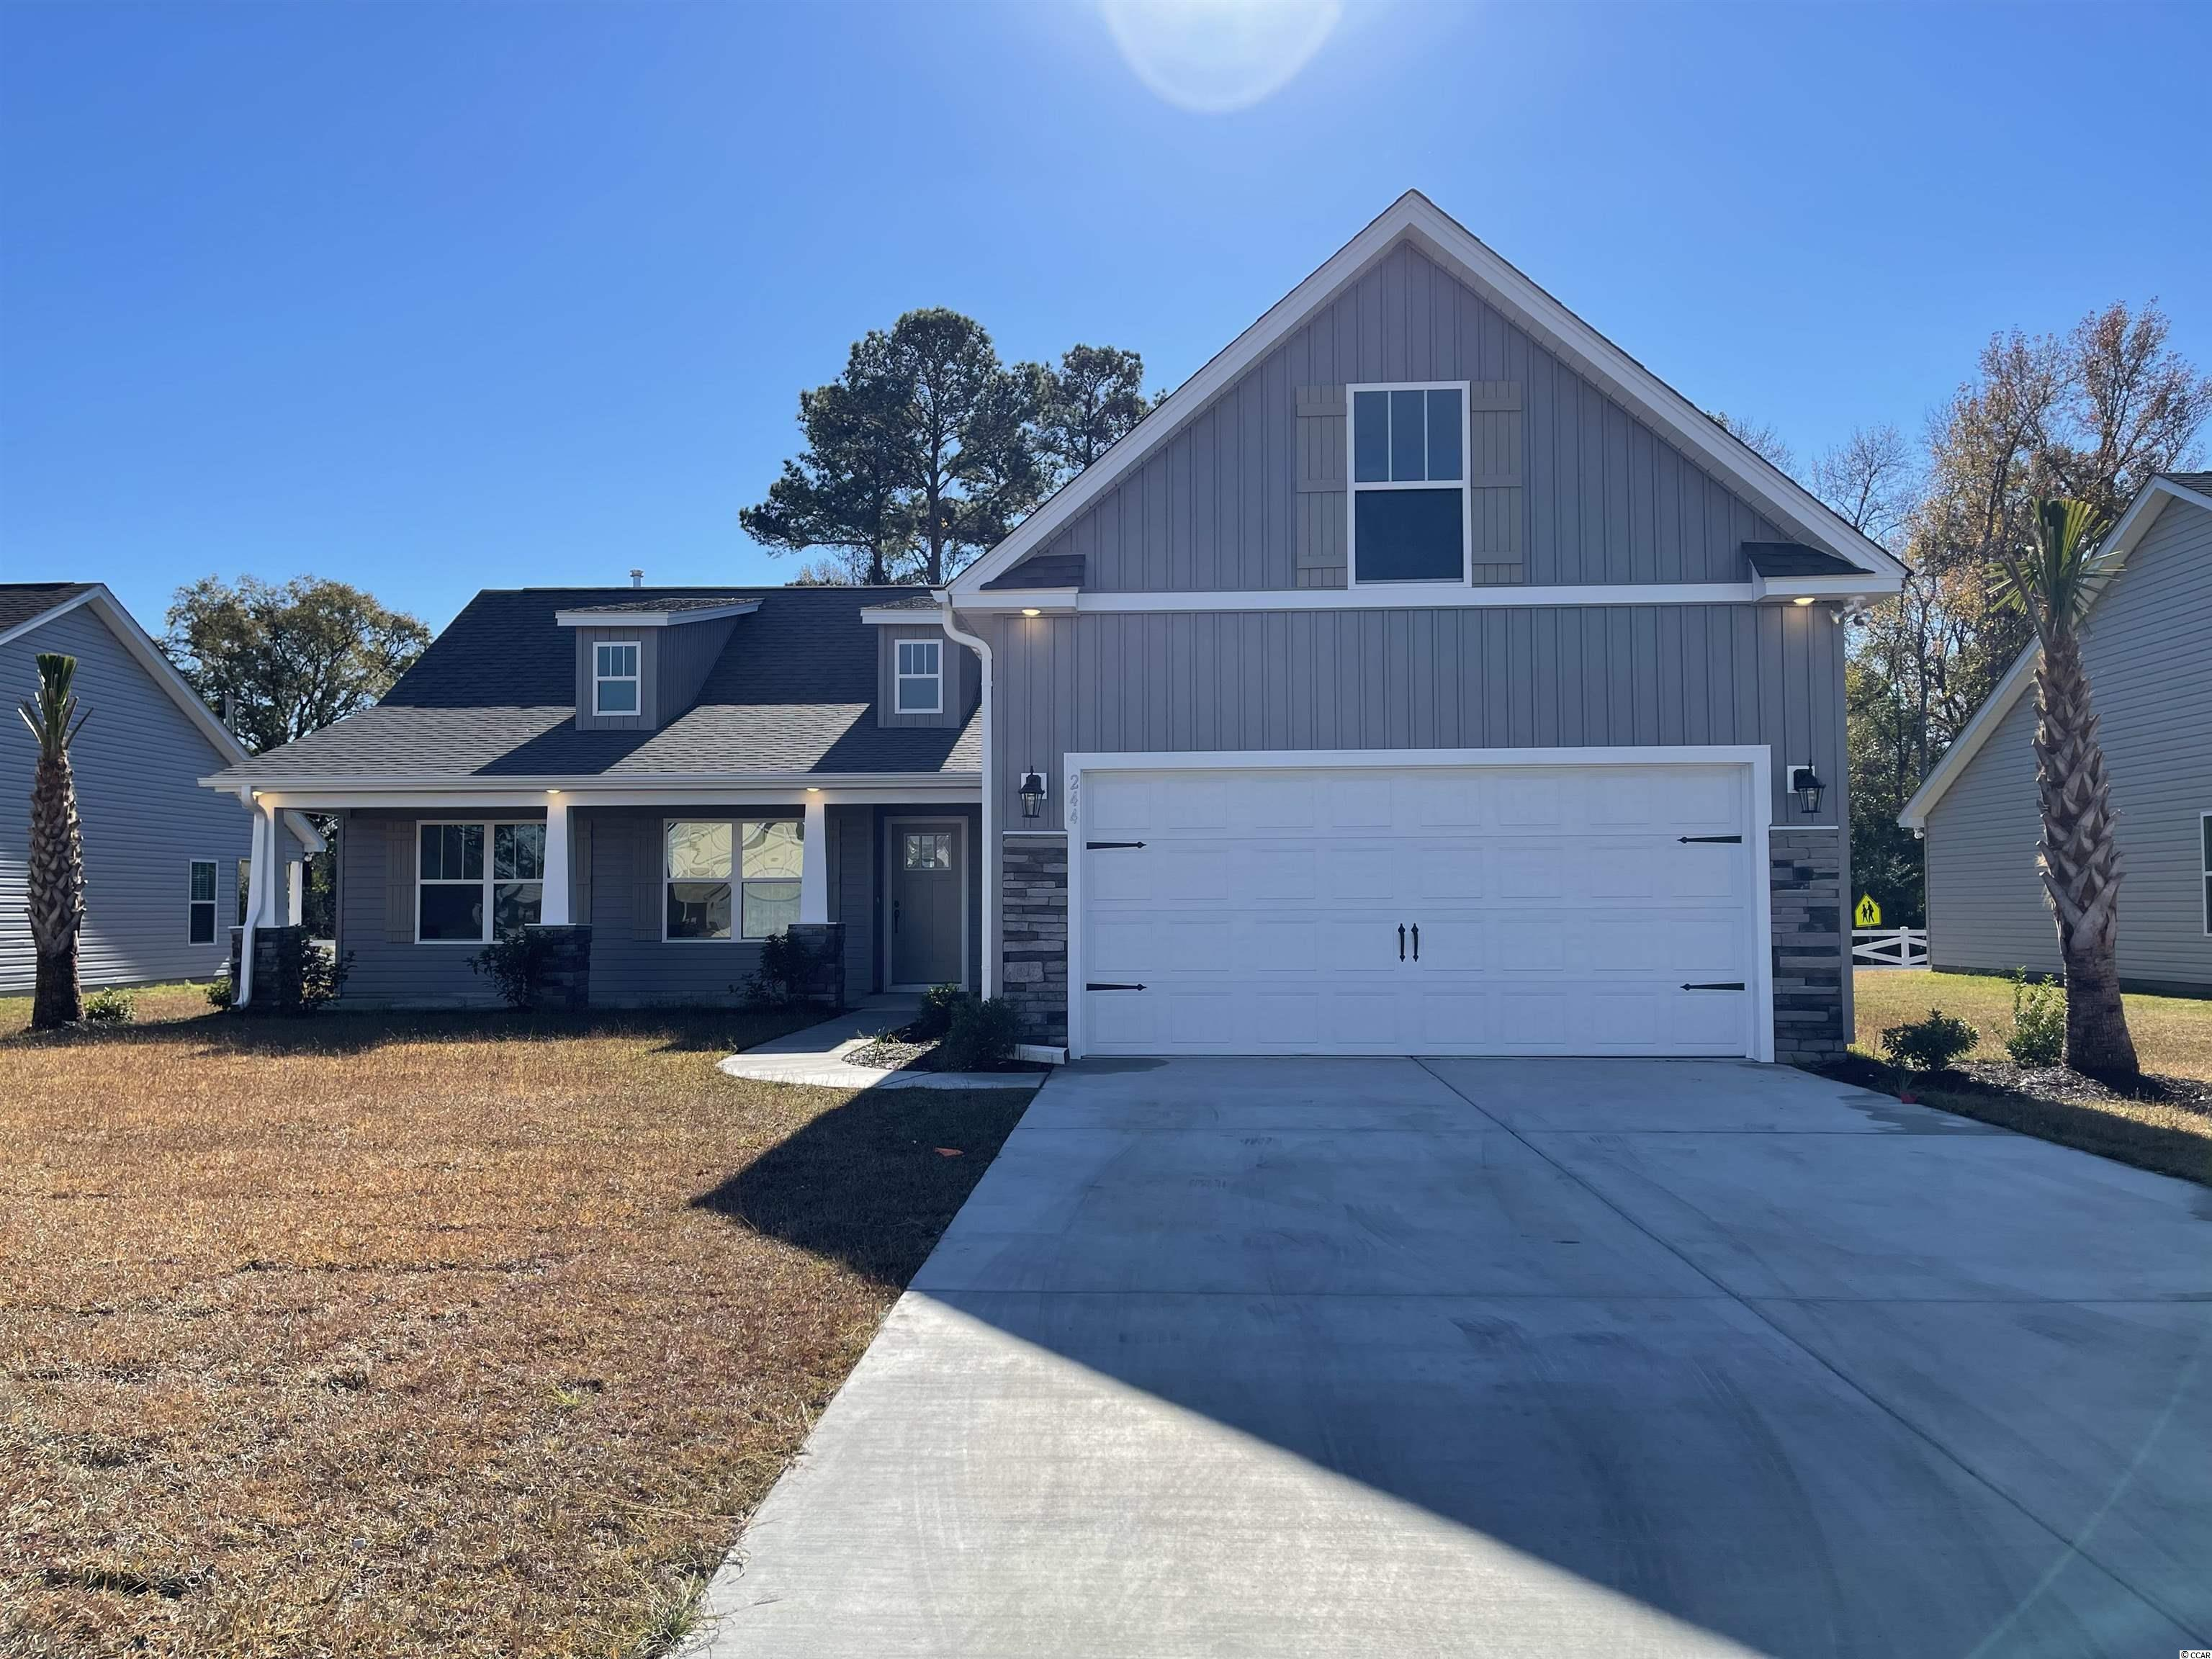 """Natural Gas quiet community located in Little River/North Myrtle Beach only a few miles from the Beach and major shopping! This is the Diamond floor plan featuring 4 bedrooms, 3 baths. This home includes finished 2 car garage, and a covered rear patio!! open concept floor plan, granite kitchen countertops, crown molding on kitchen cabinets with hardware included. 5ft cultured marble shower and a soaking tub in Master bathroom, walk in master closet. Ceramic tile in all bathrooms and Laundry room, LVP flooring in Family Room, Foyer, Hall. Vaulted ceiling in Family room and Master bedroom. Wainscot and 5 1/2 """" beaded baseboards for Custom look!! Home also includes TAEXX pest control tubing, lawn irrigation and Ring video doorbell!!!Stone accents on the exterior as well. All measurements are approximate *Photos of a similar home* Some items on the photos may be an additional cost. Anticipating completion in Fall 2021."""